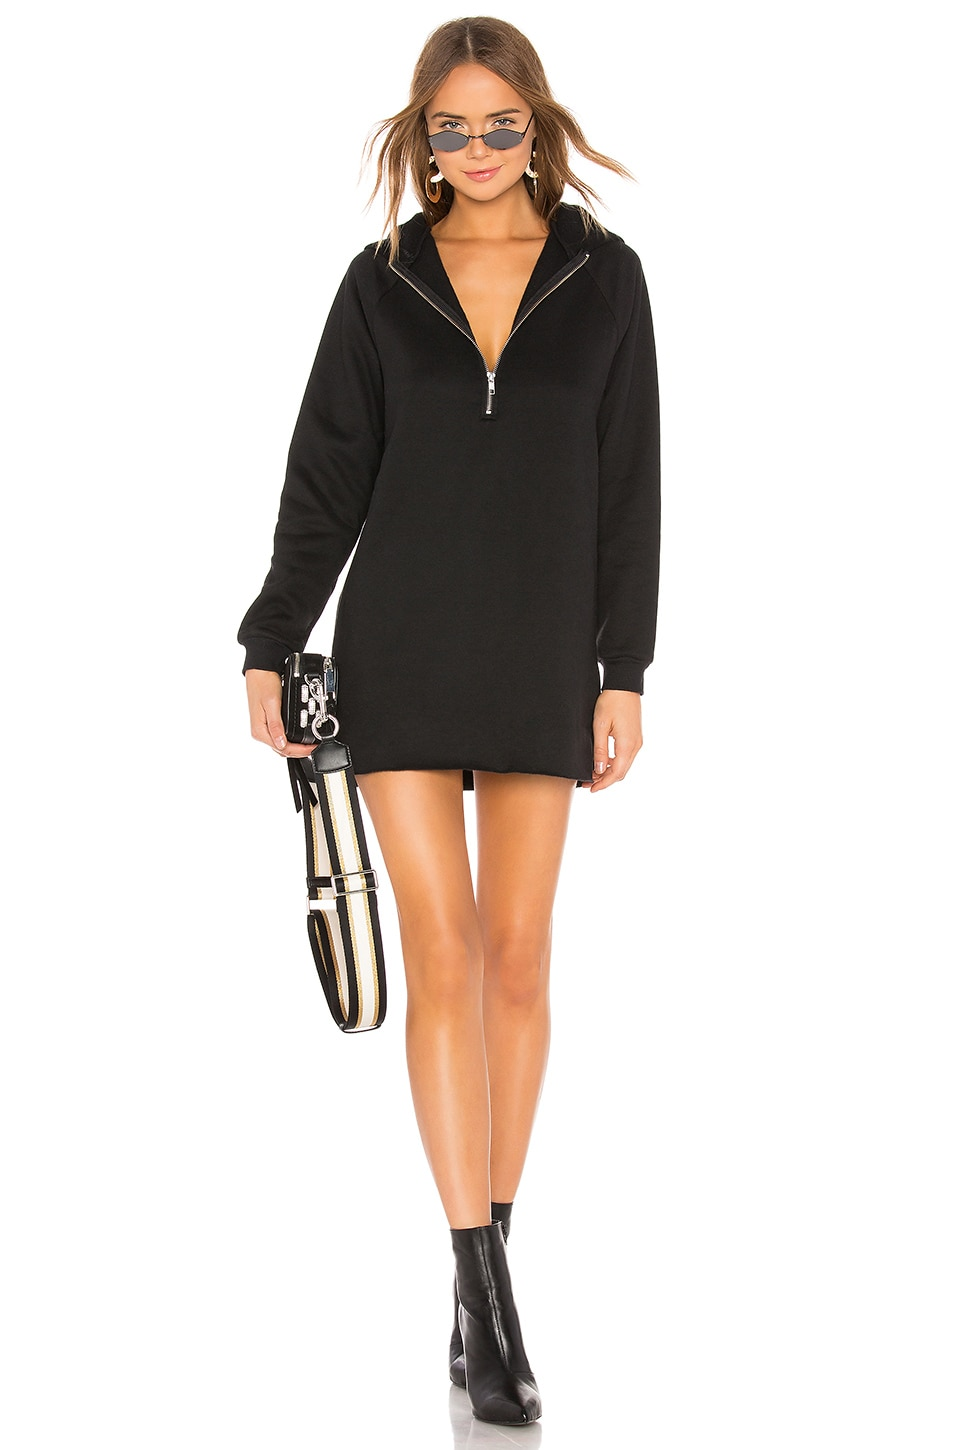 Lovers + Friends Izzy Zip Up Hoodie in Black